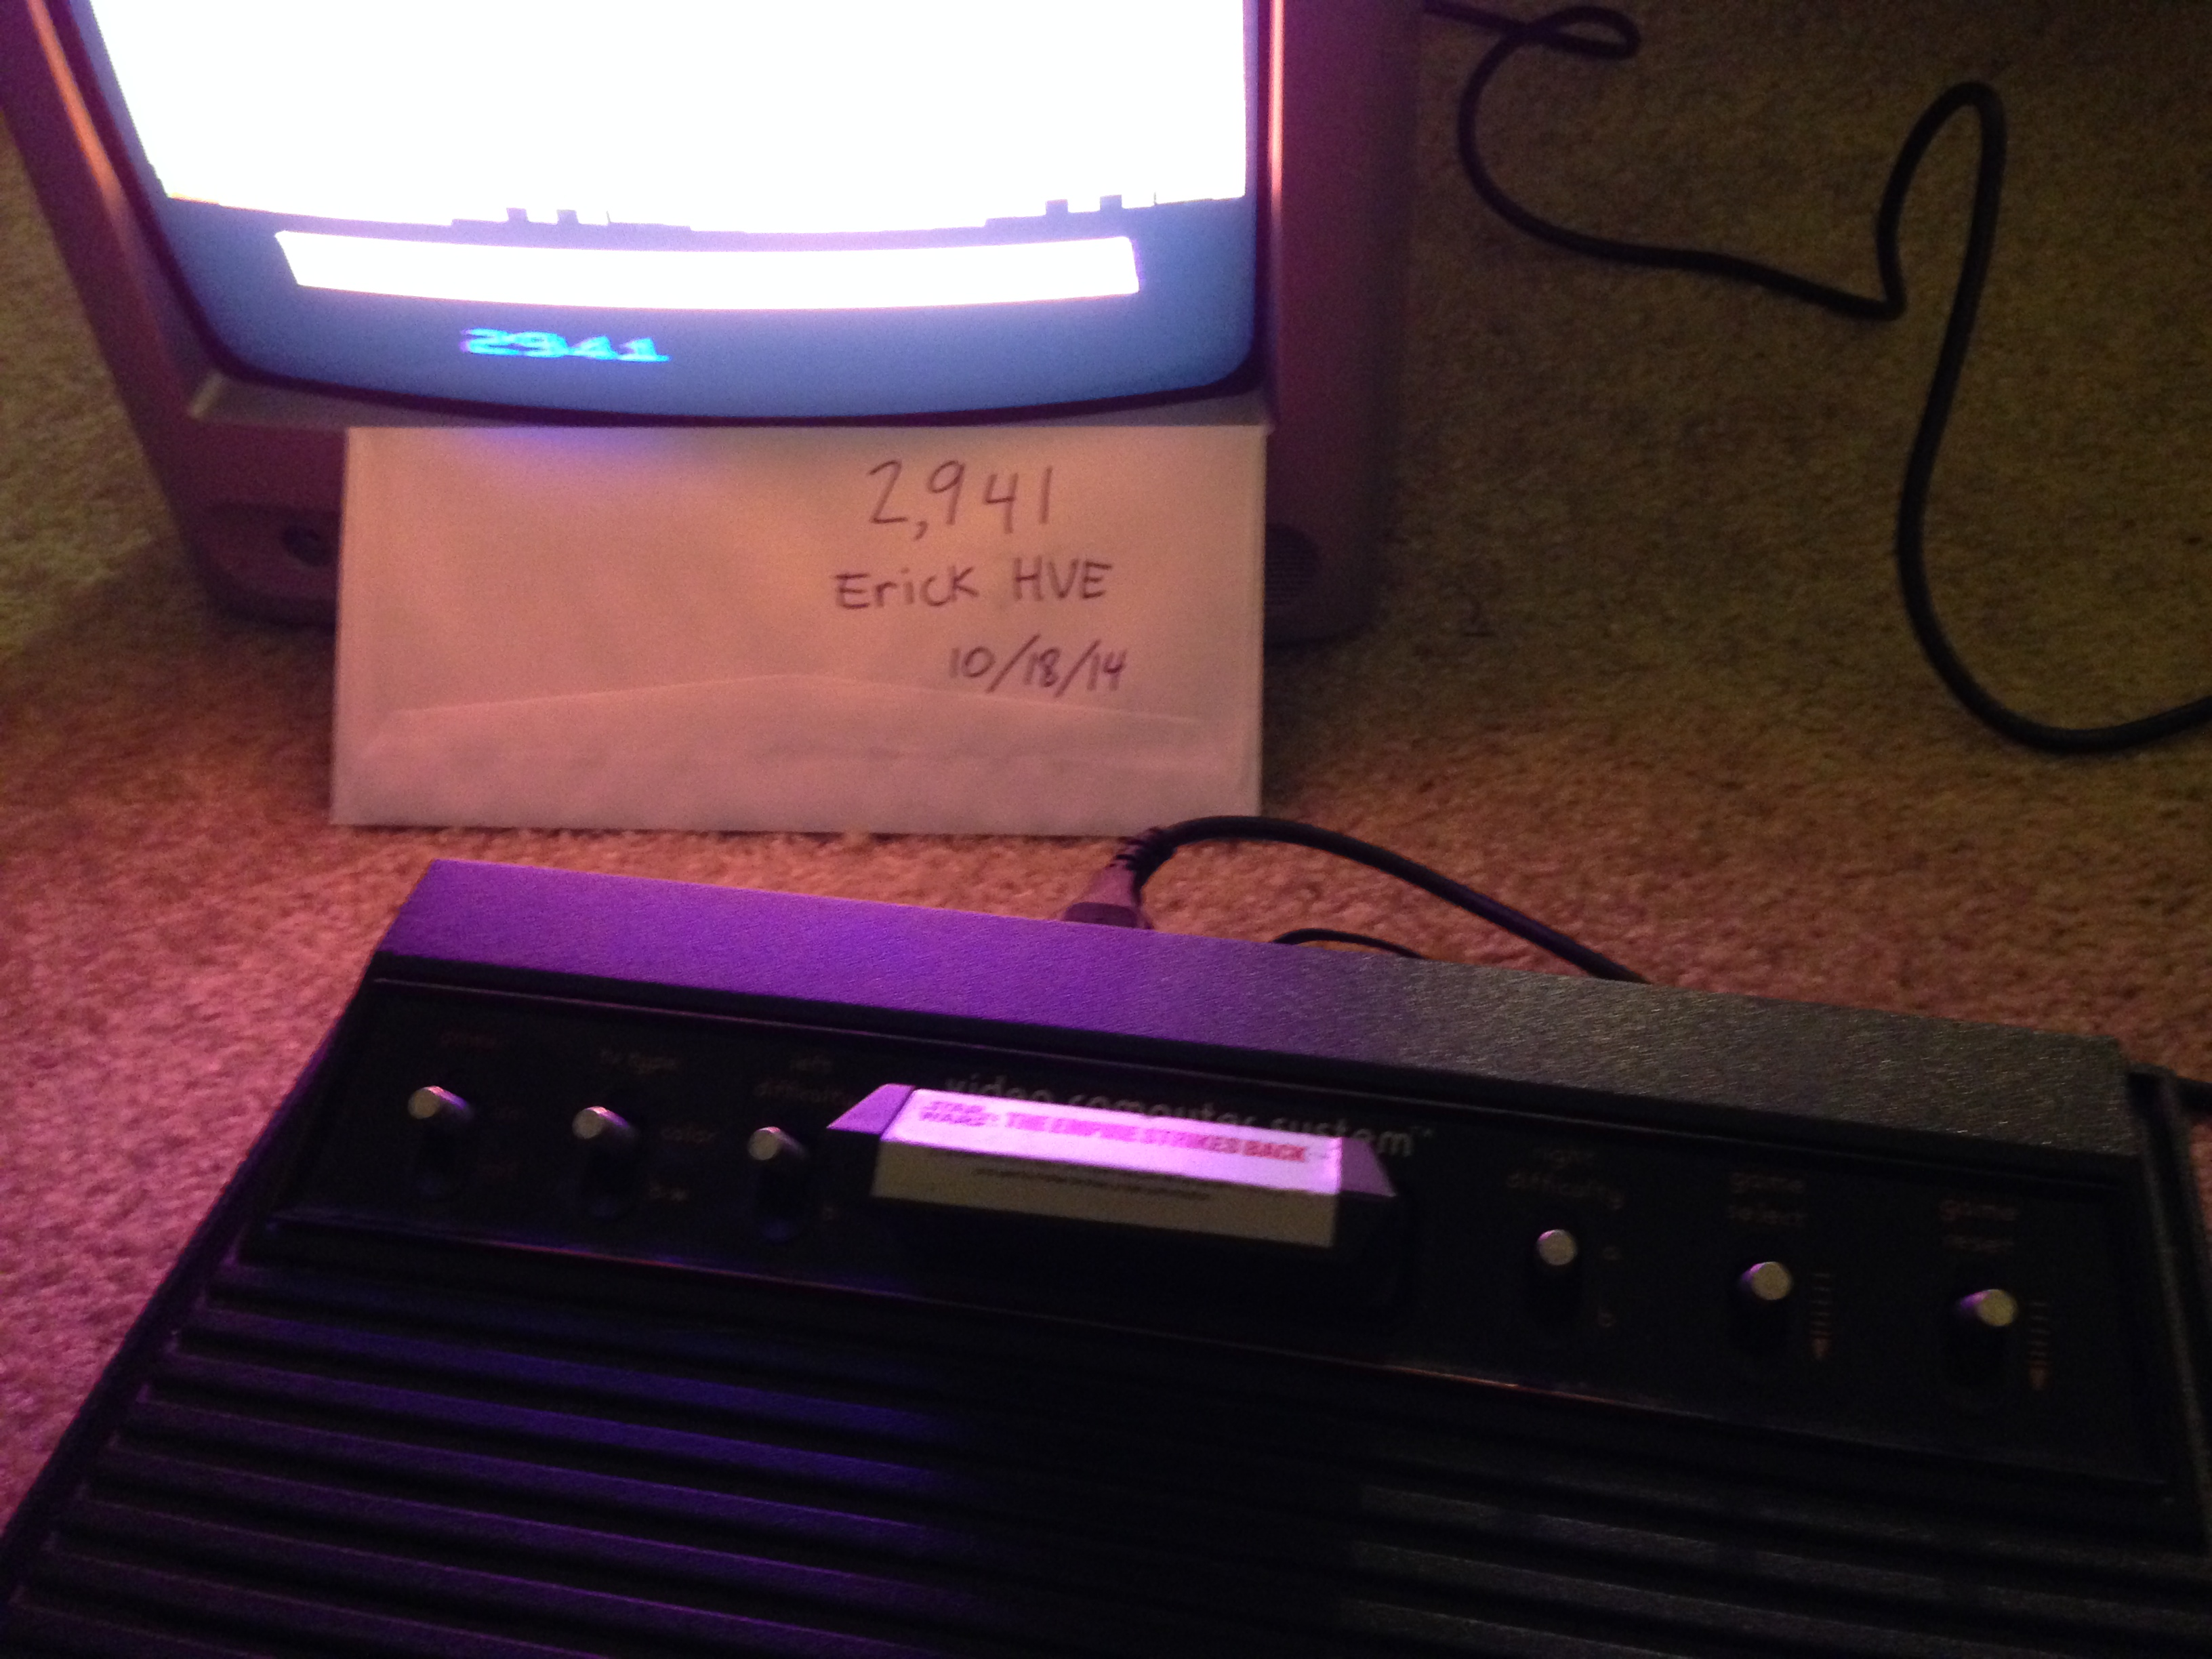 ErickHVE: Star Wars: Empire Strikes Back (Atari 2600 Expert/A) 2,941 points on 2014-10-20 01:37:11